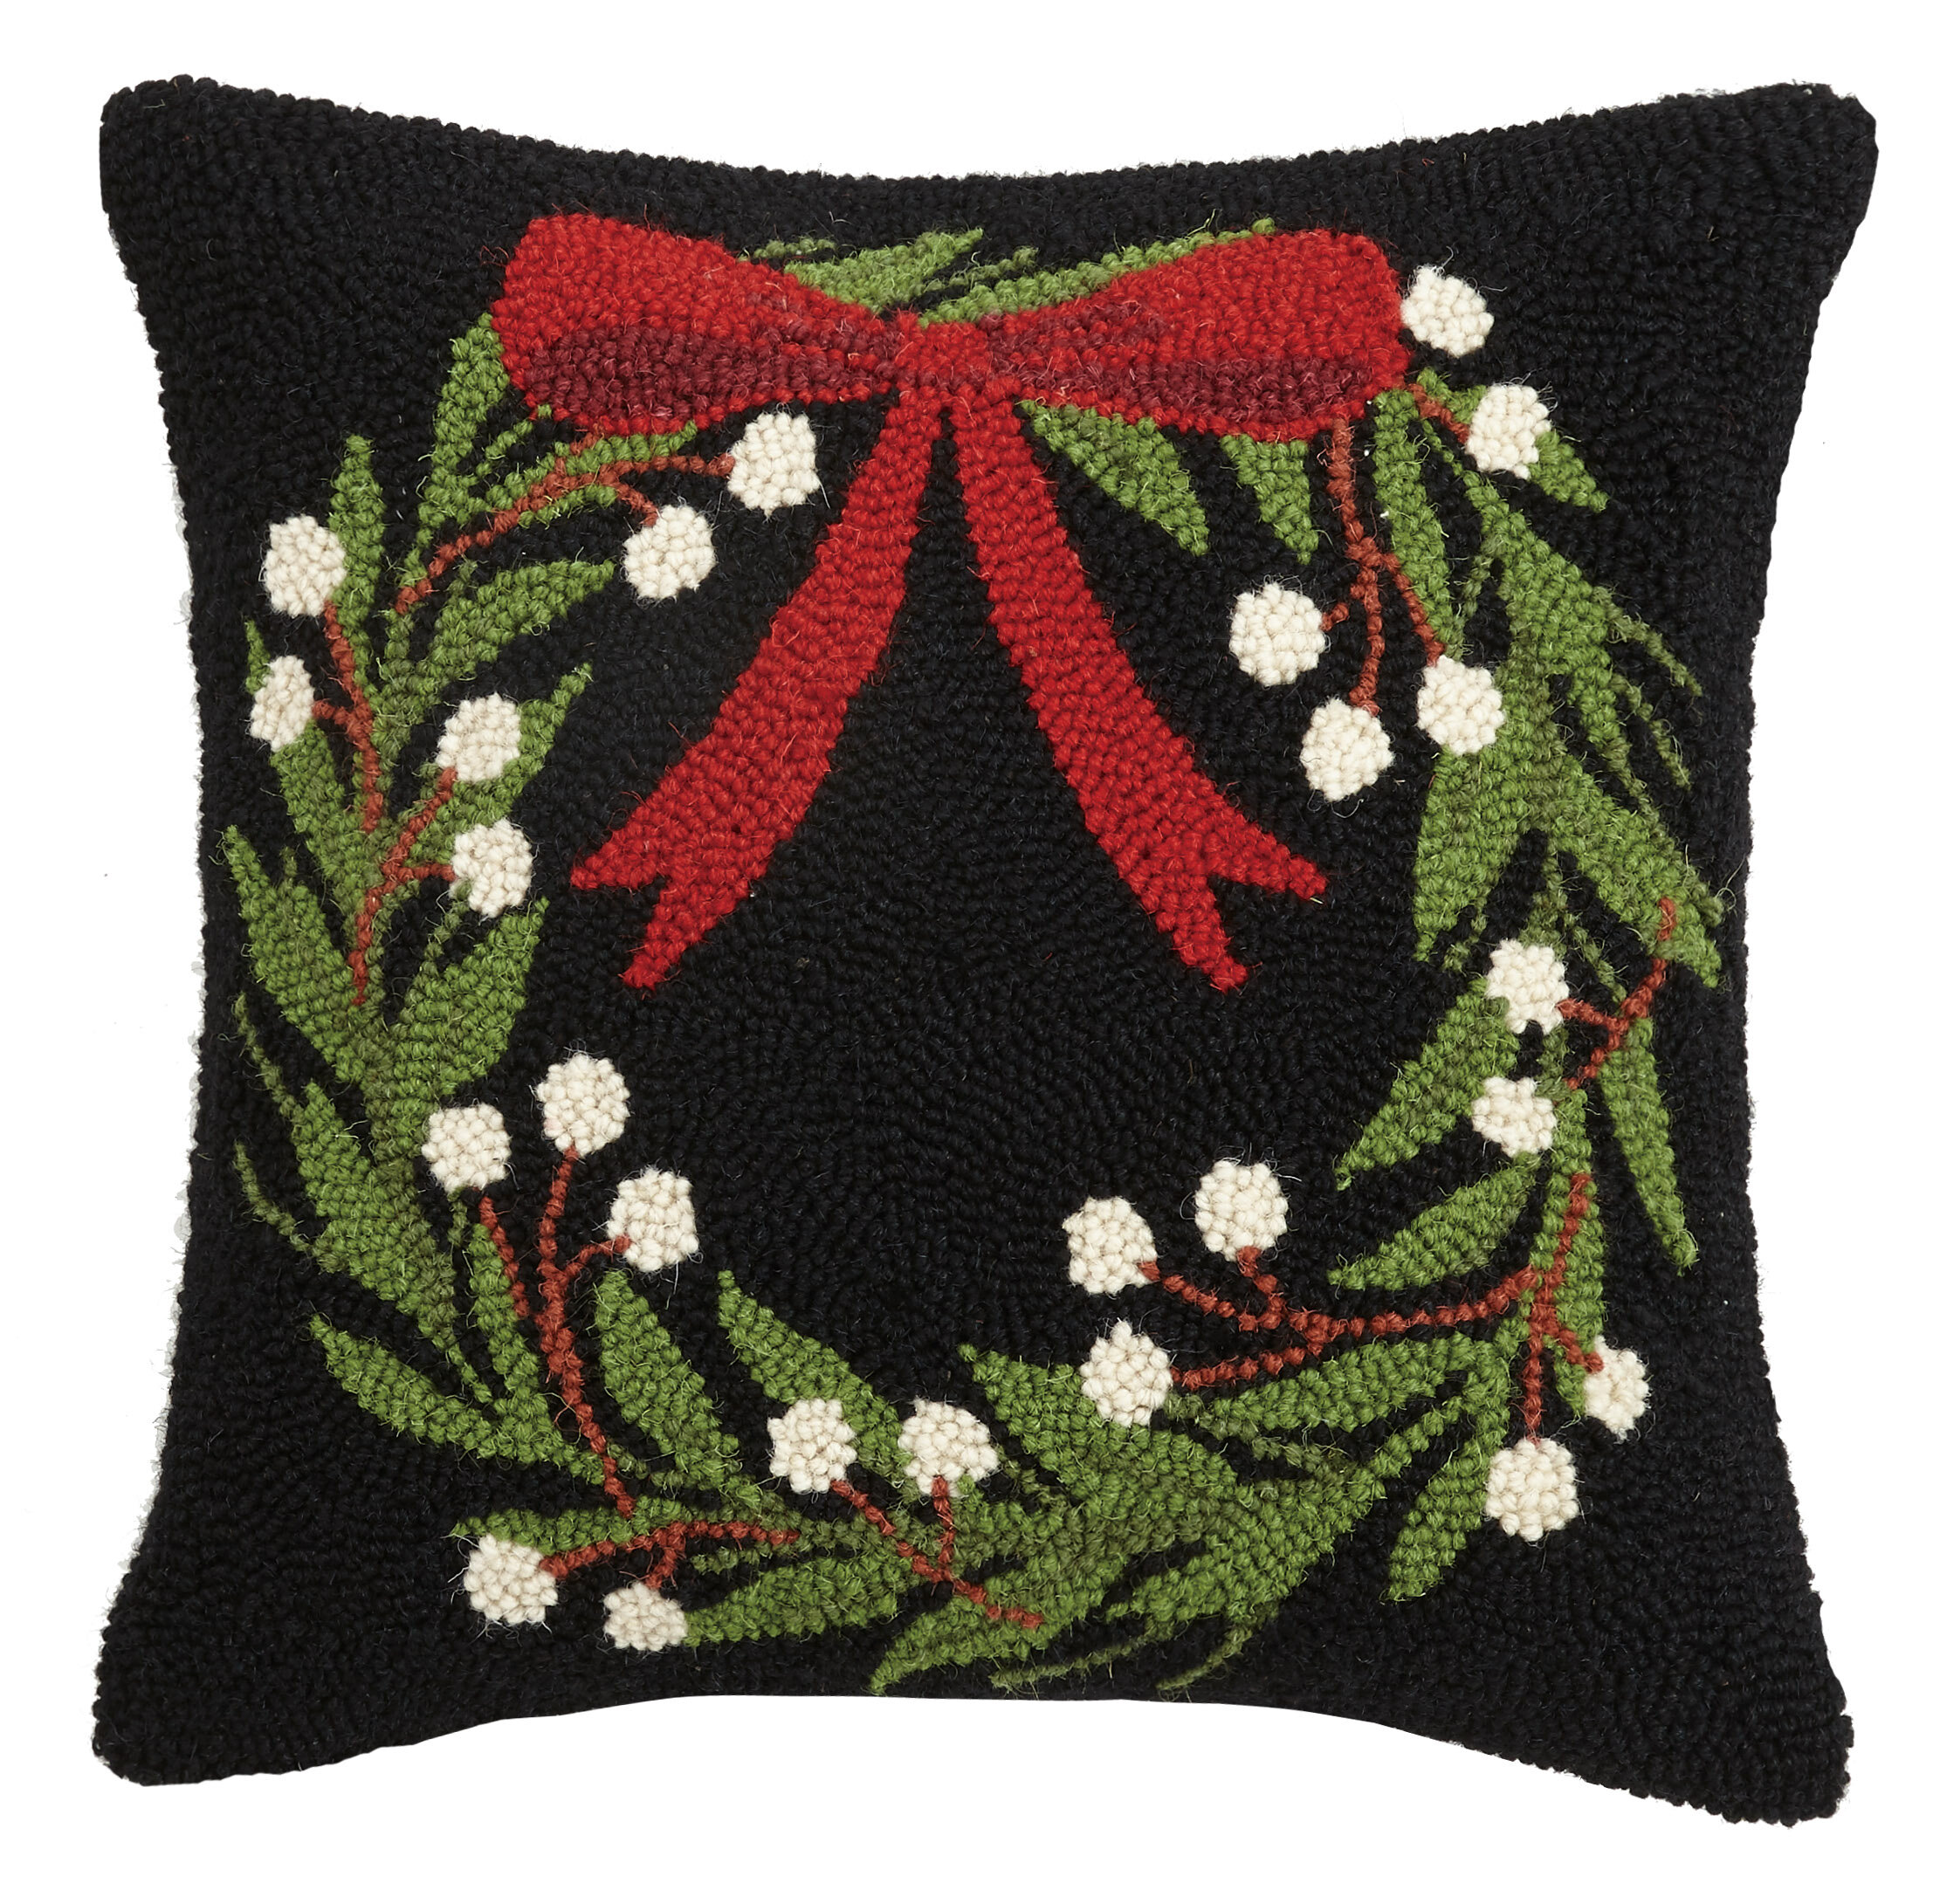 The Holiday Aisle Cabrillo Wreath Hook Wool Throw Pillow Wayfair